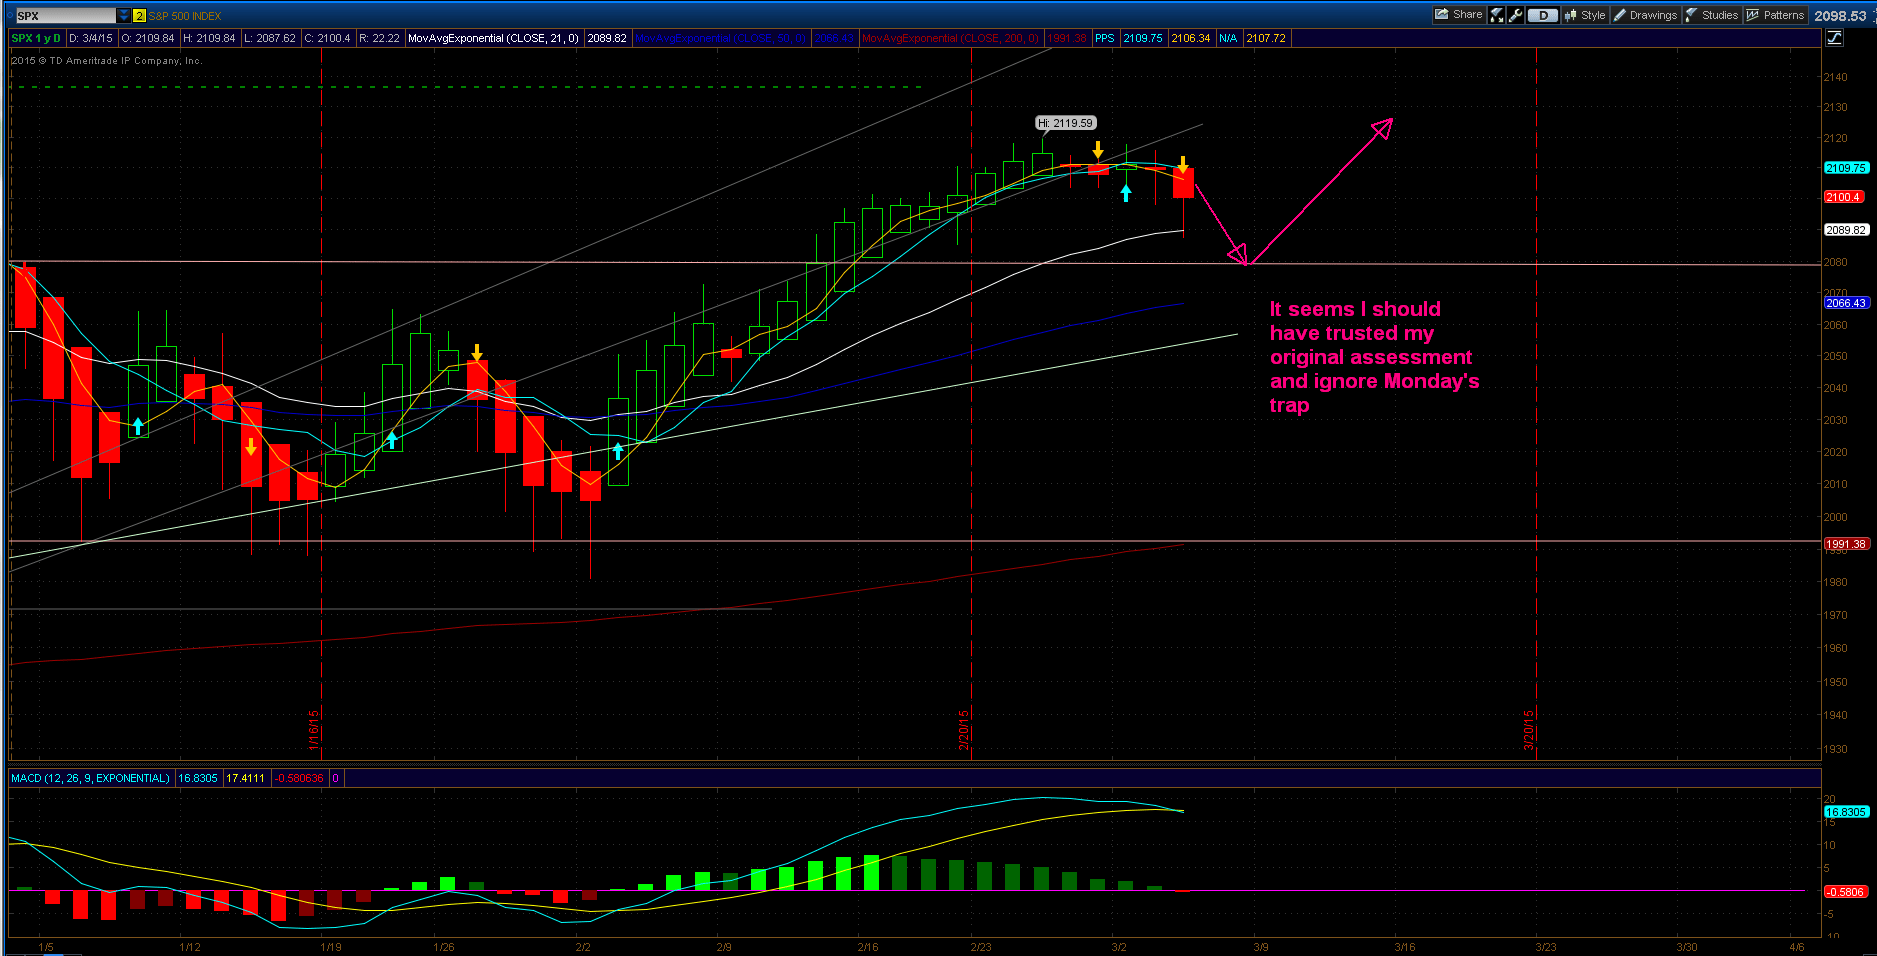 SPX yearly move